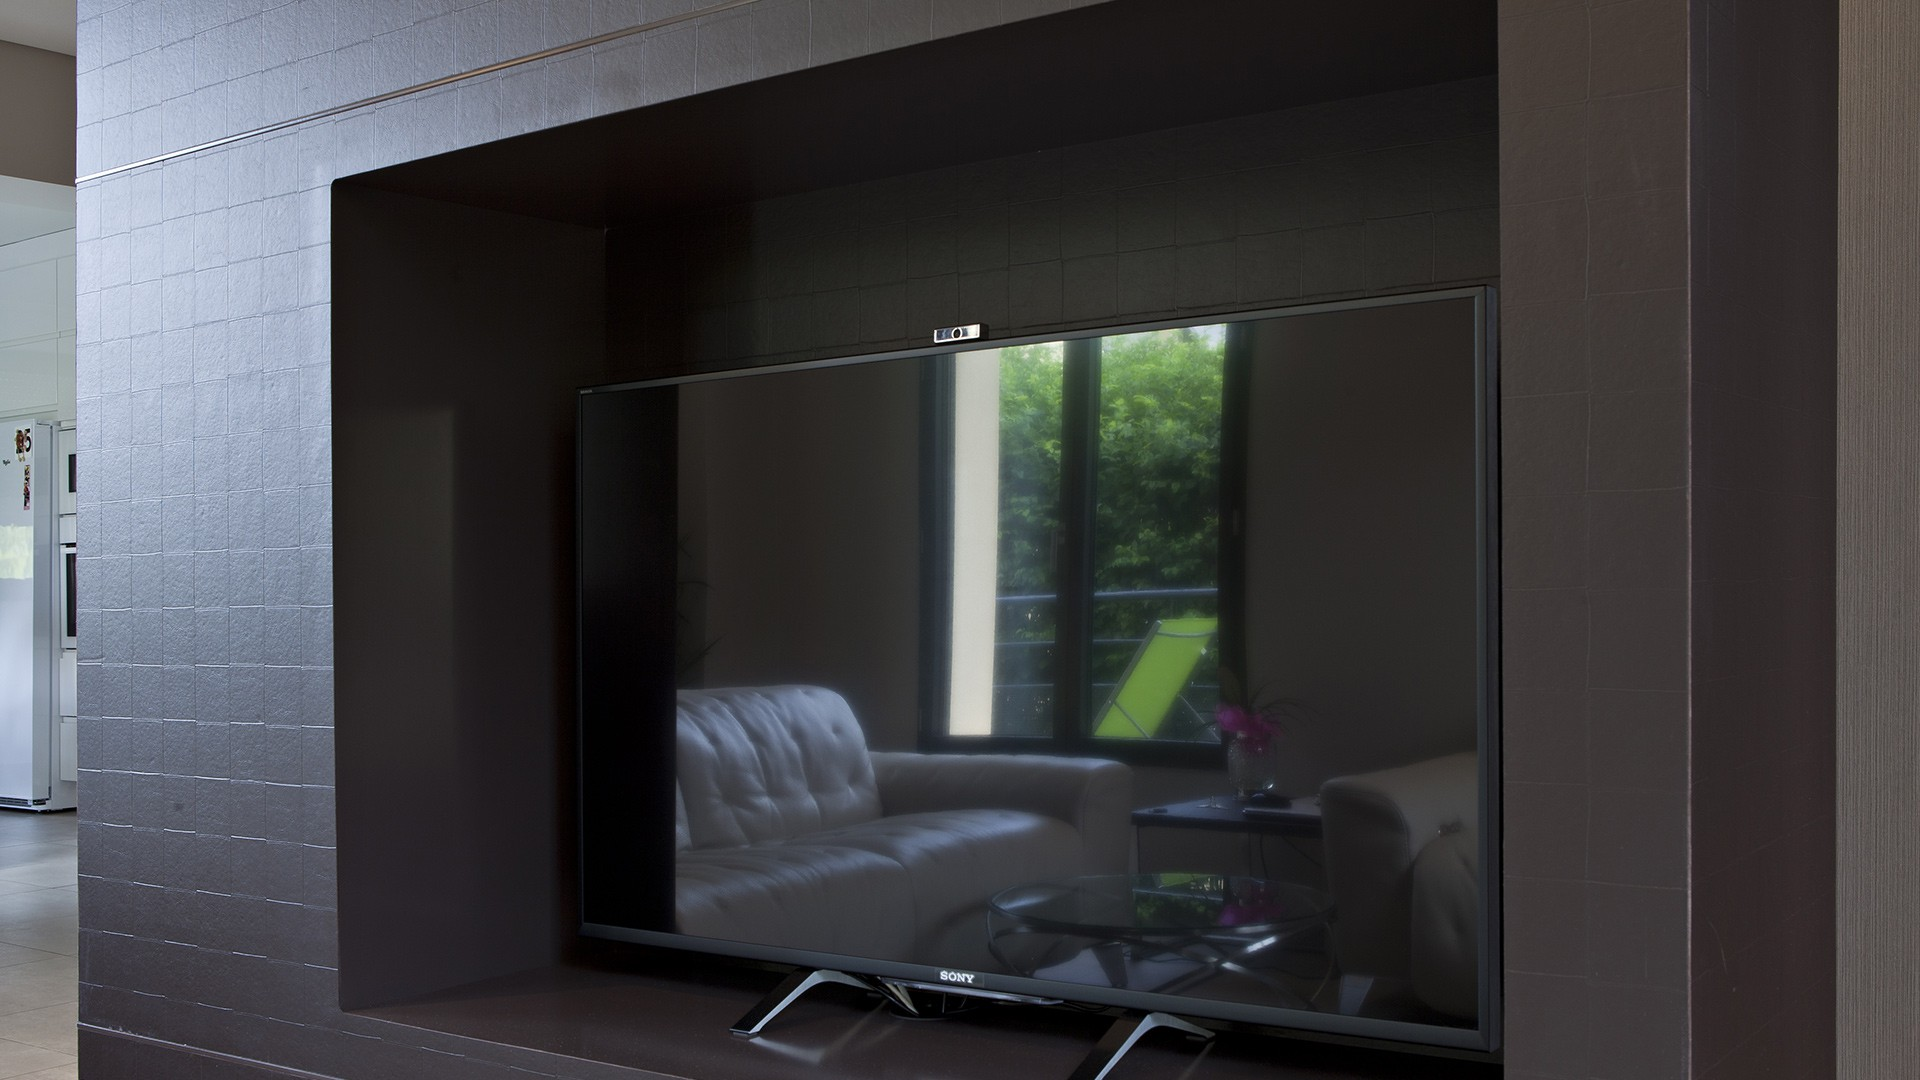 Meuble Tv Retractable Fenrez Com Sammlung Von Design  # Meuble Tv Ecran Plat Retractable